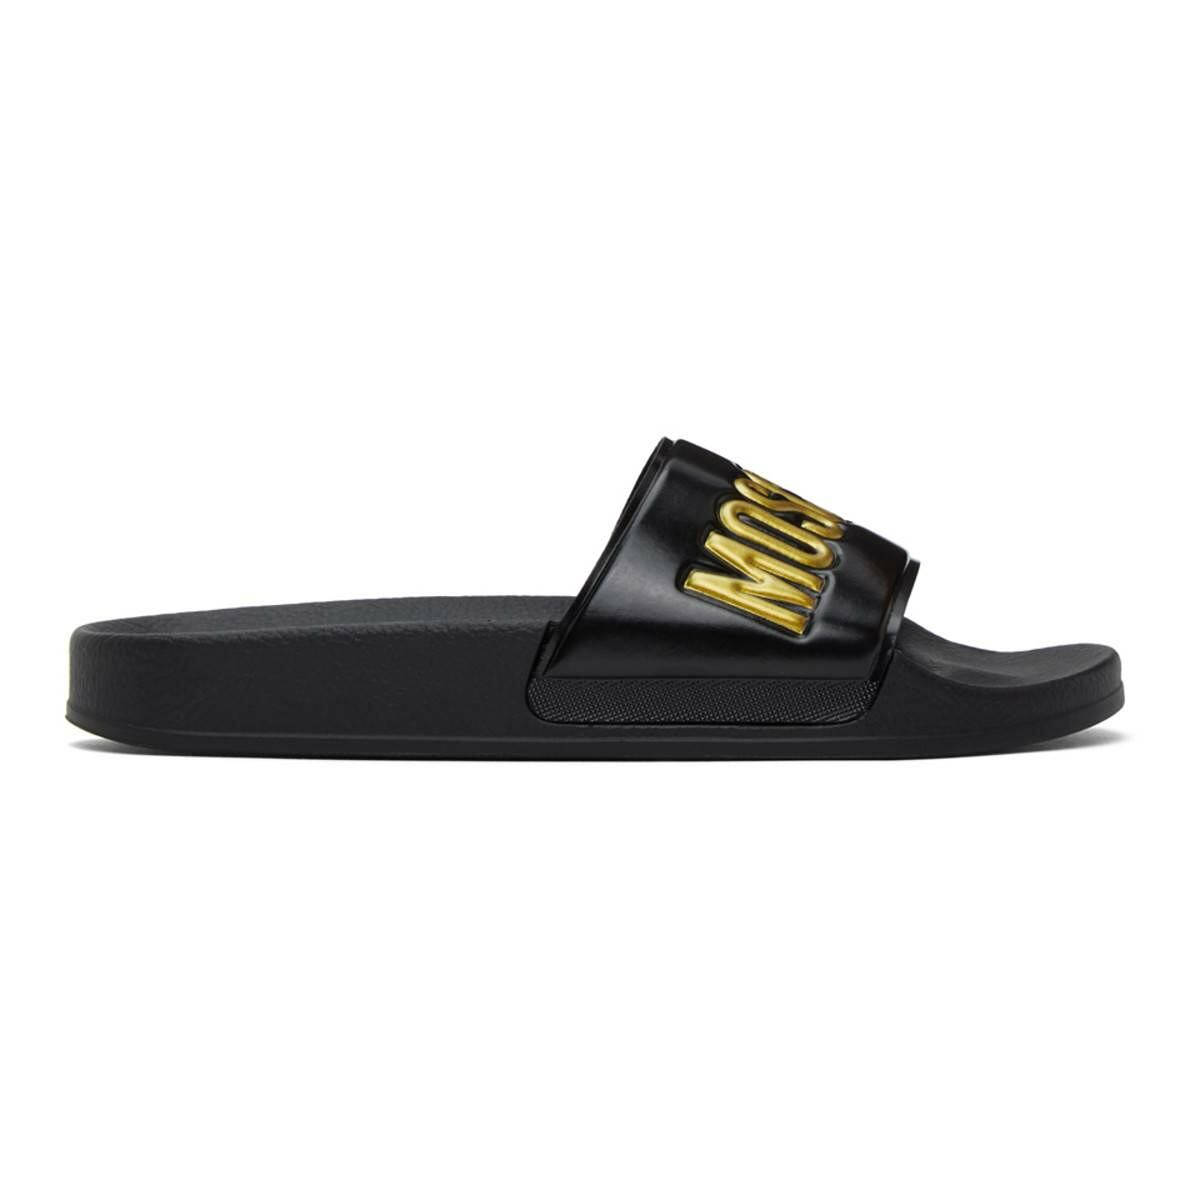 Moschino Black and Gold Logo Slides Ssense USA MEN Men SHOES Mens SANDALS